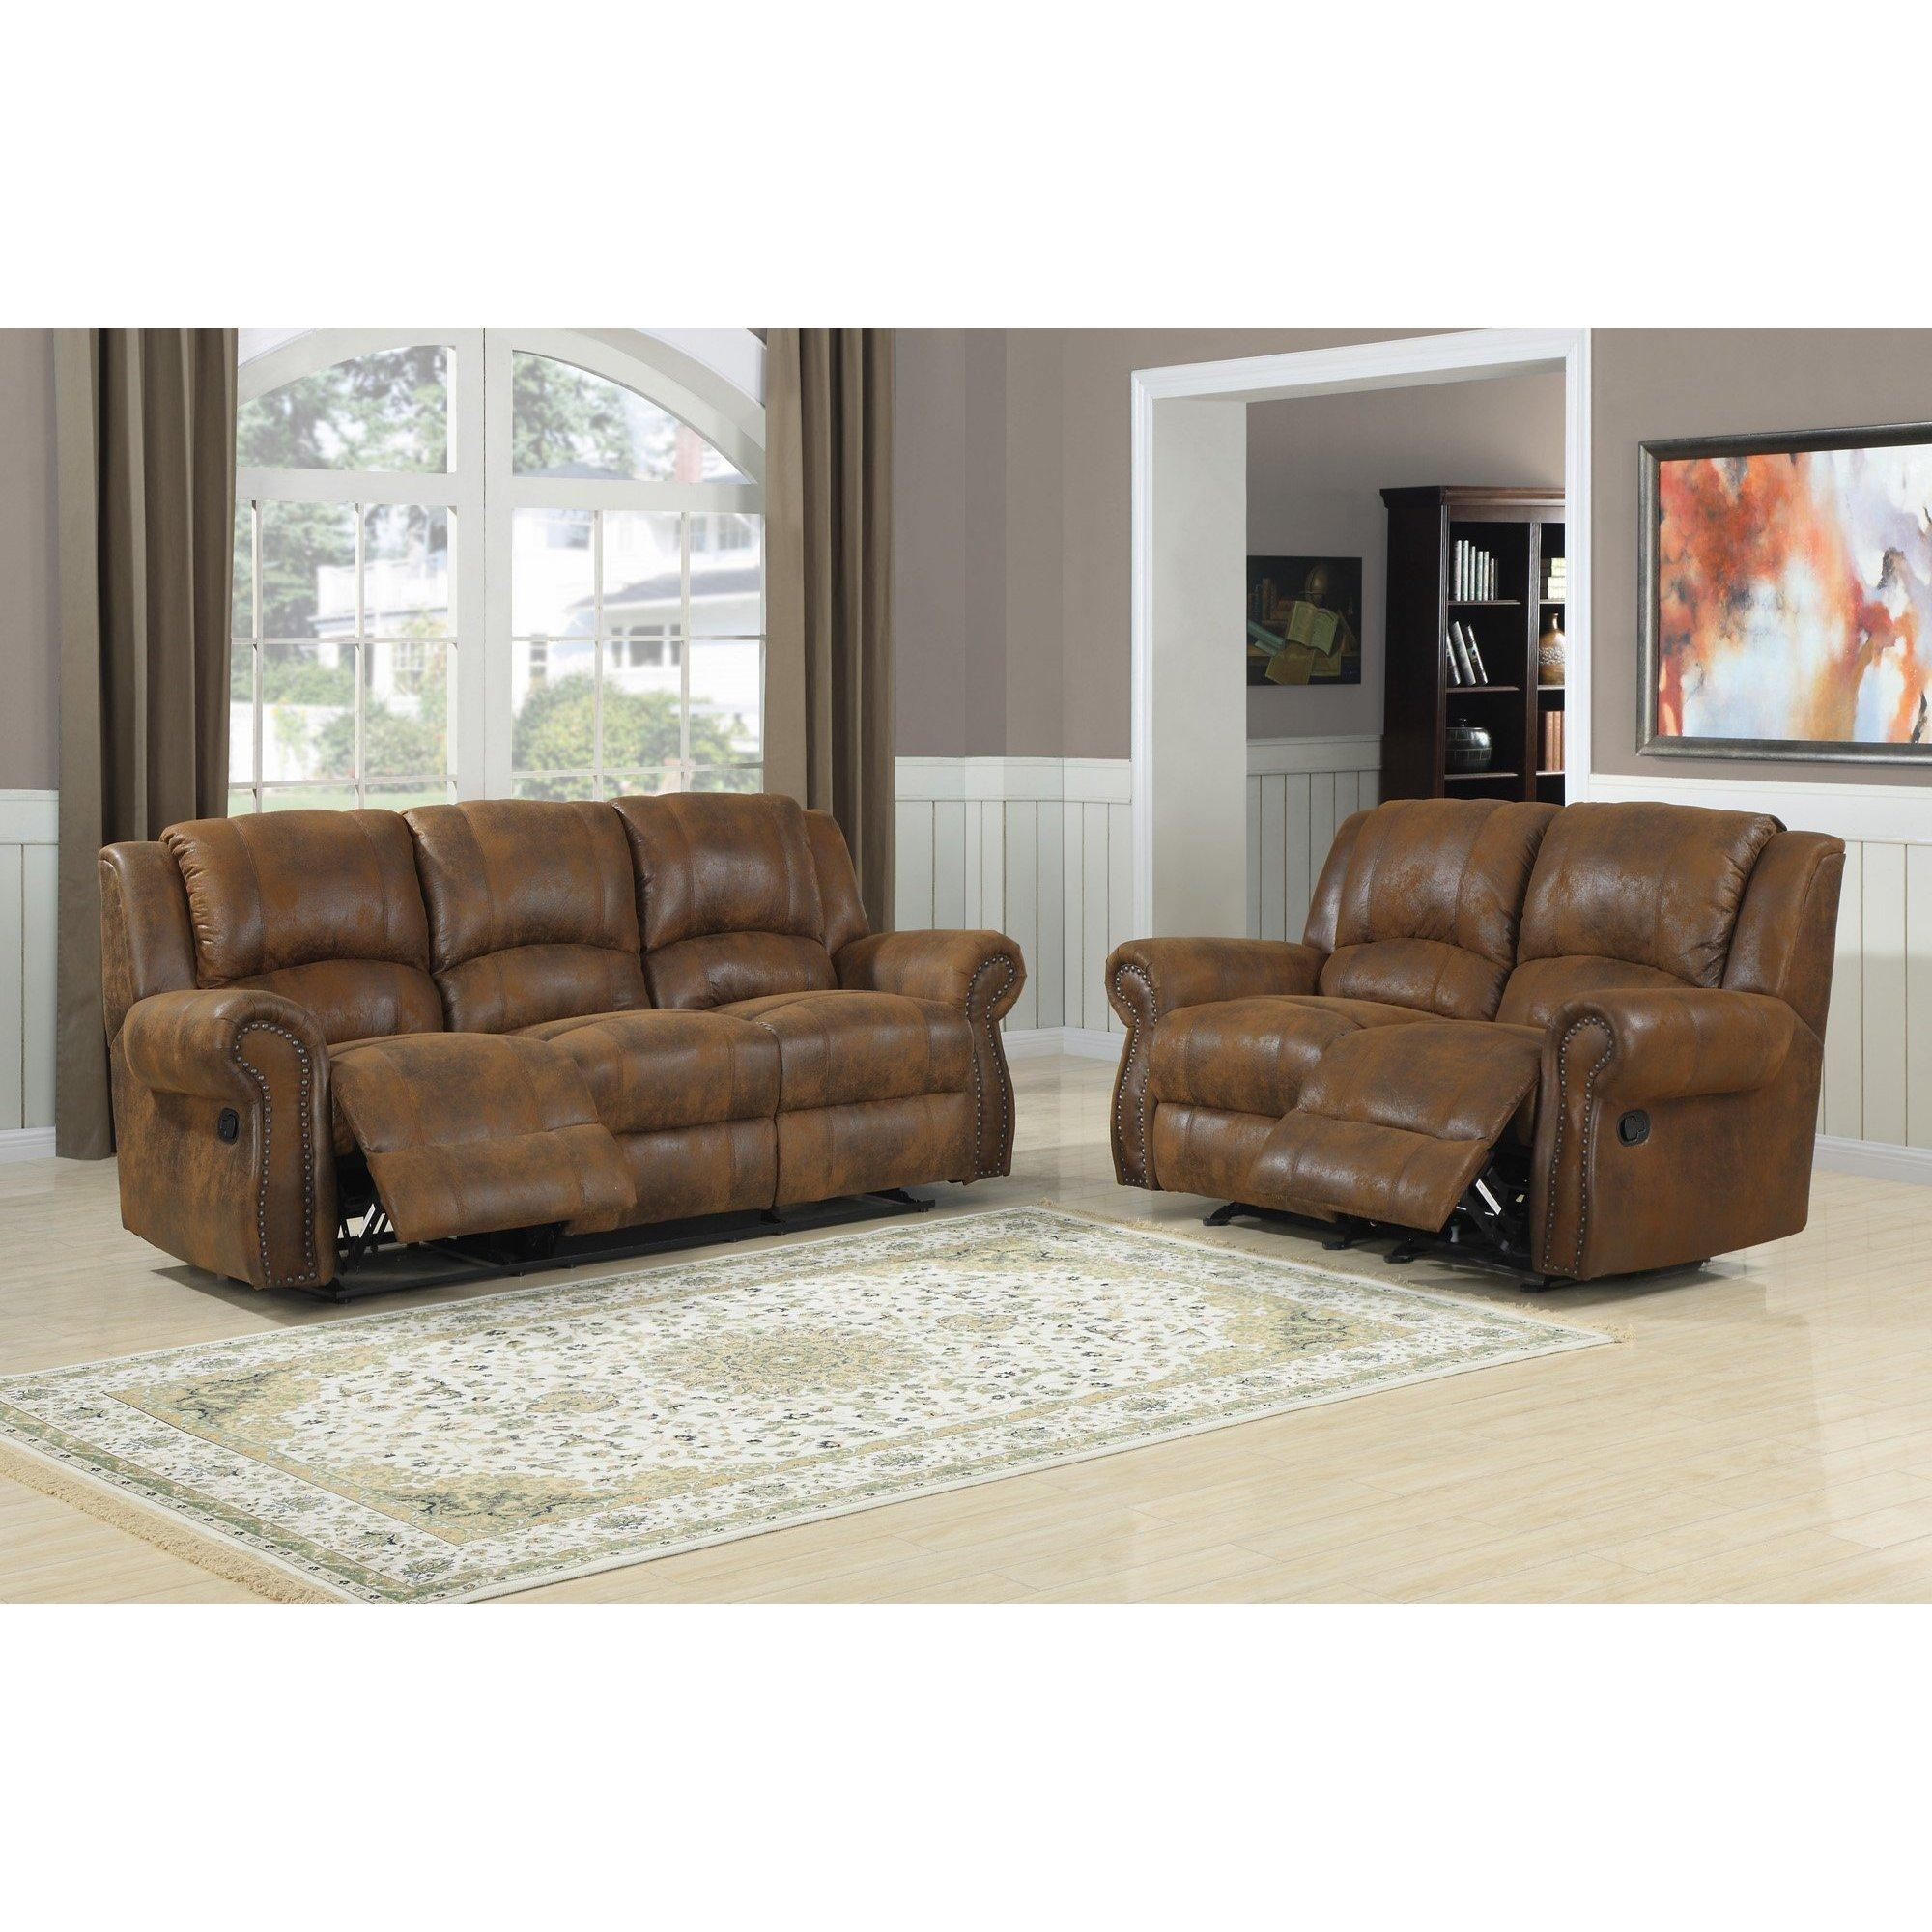 Bomber Jacket Leather Sofa With Design Picture 36384 | Kengire Within Bomber Leather Sofas (Image 2 of 20)